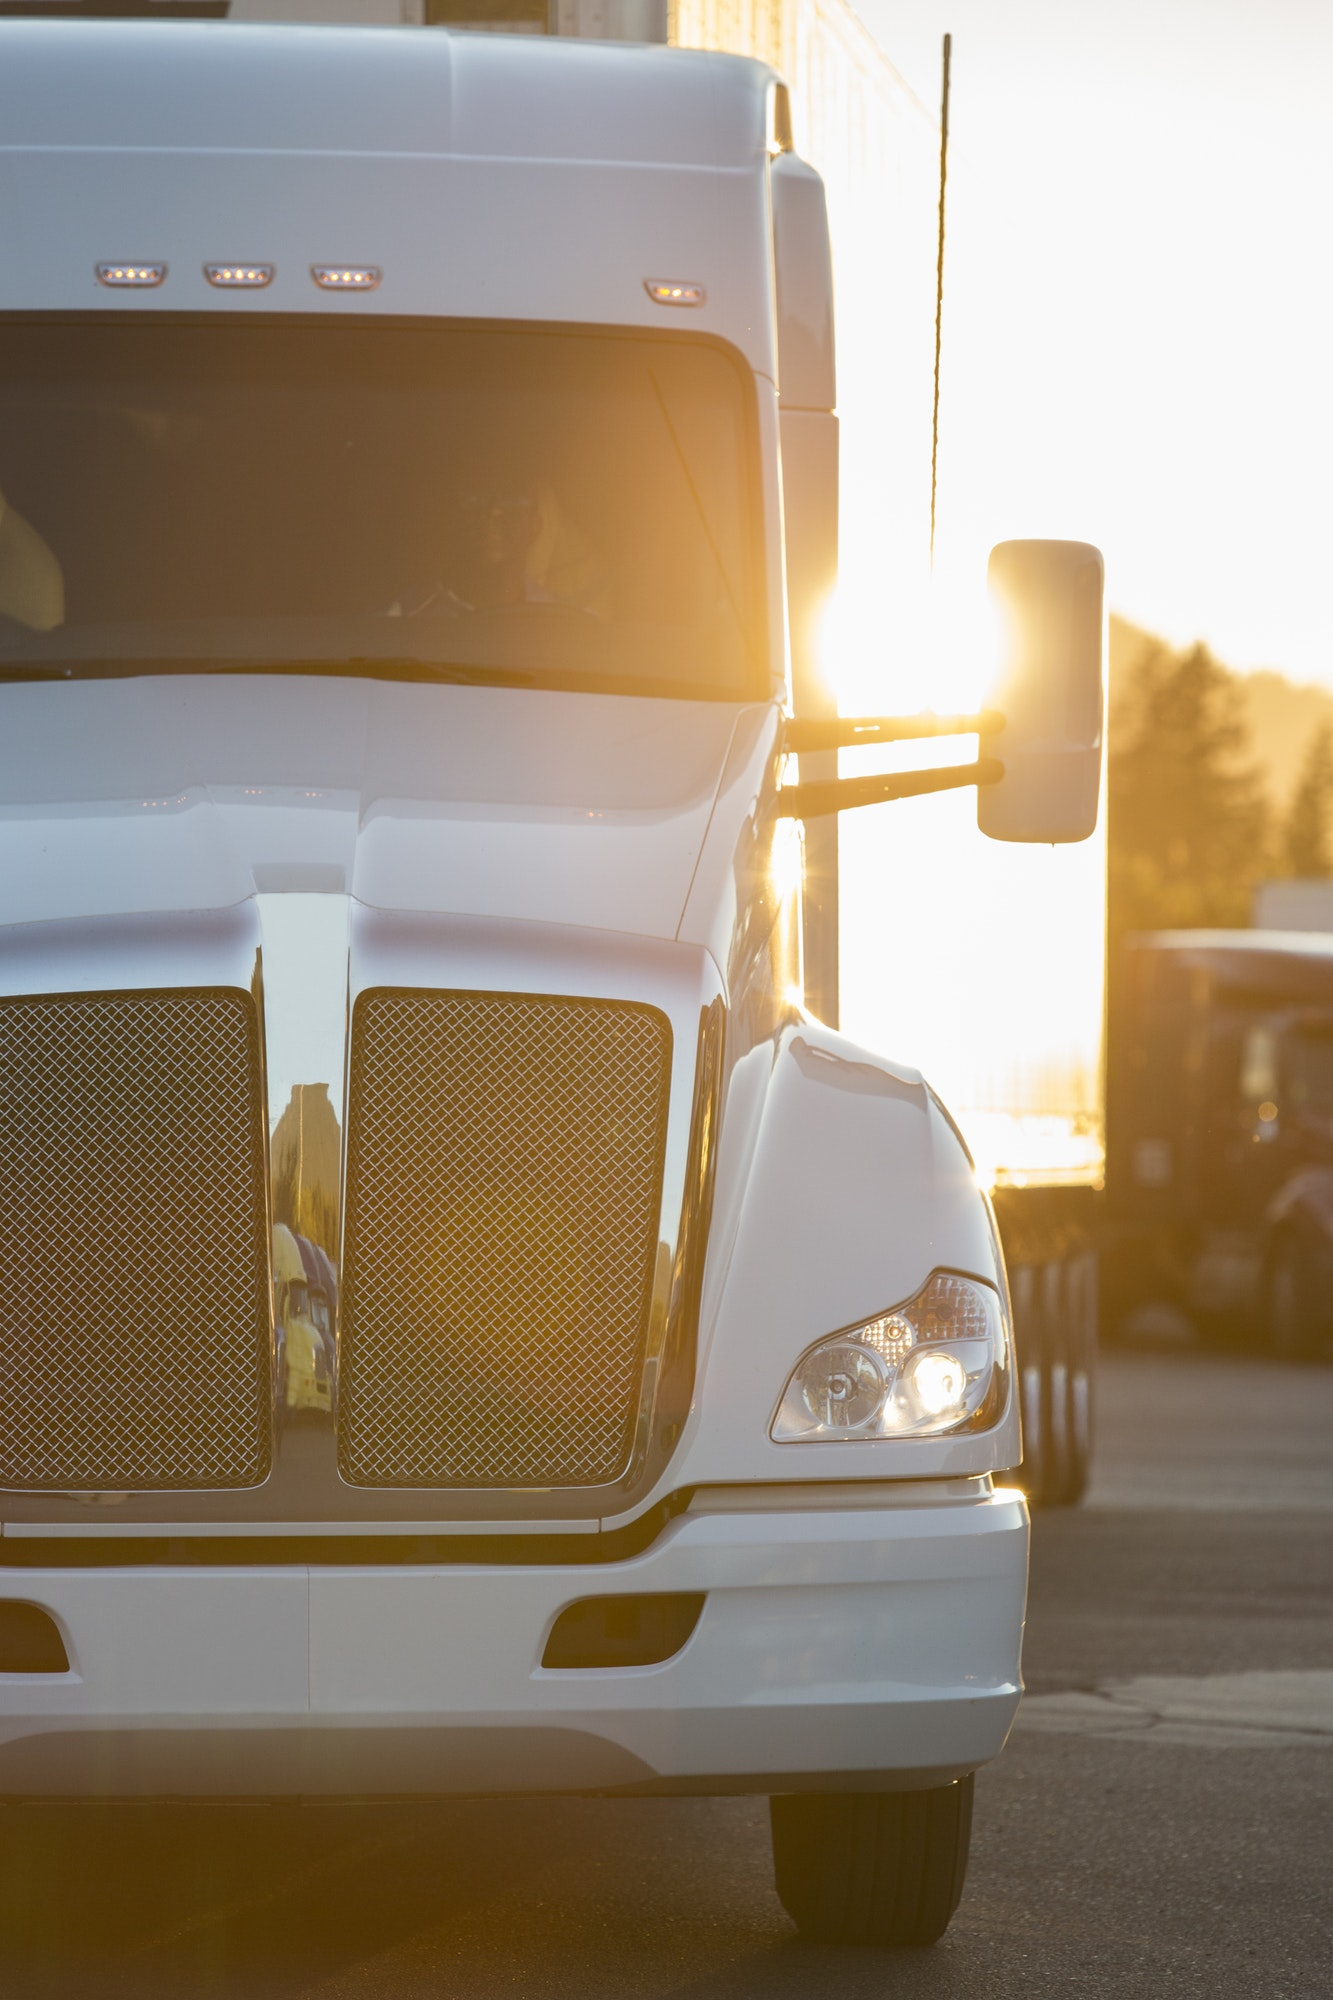 A large commercial truck moving through a truck stop parking lot at sunset.